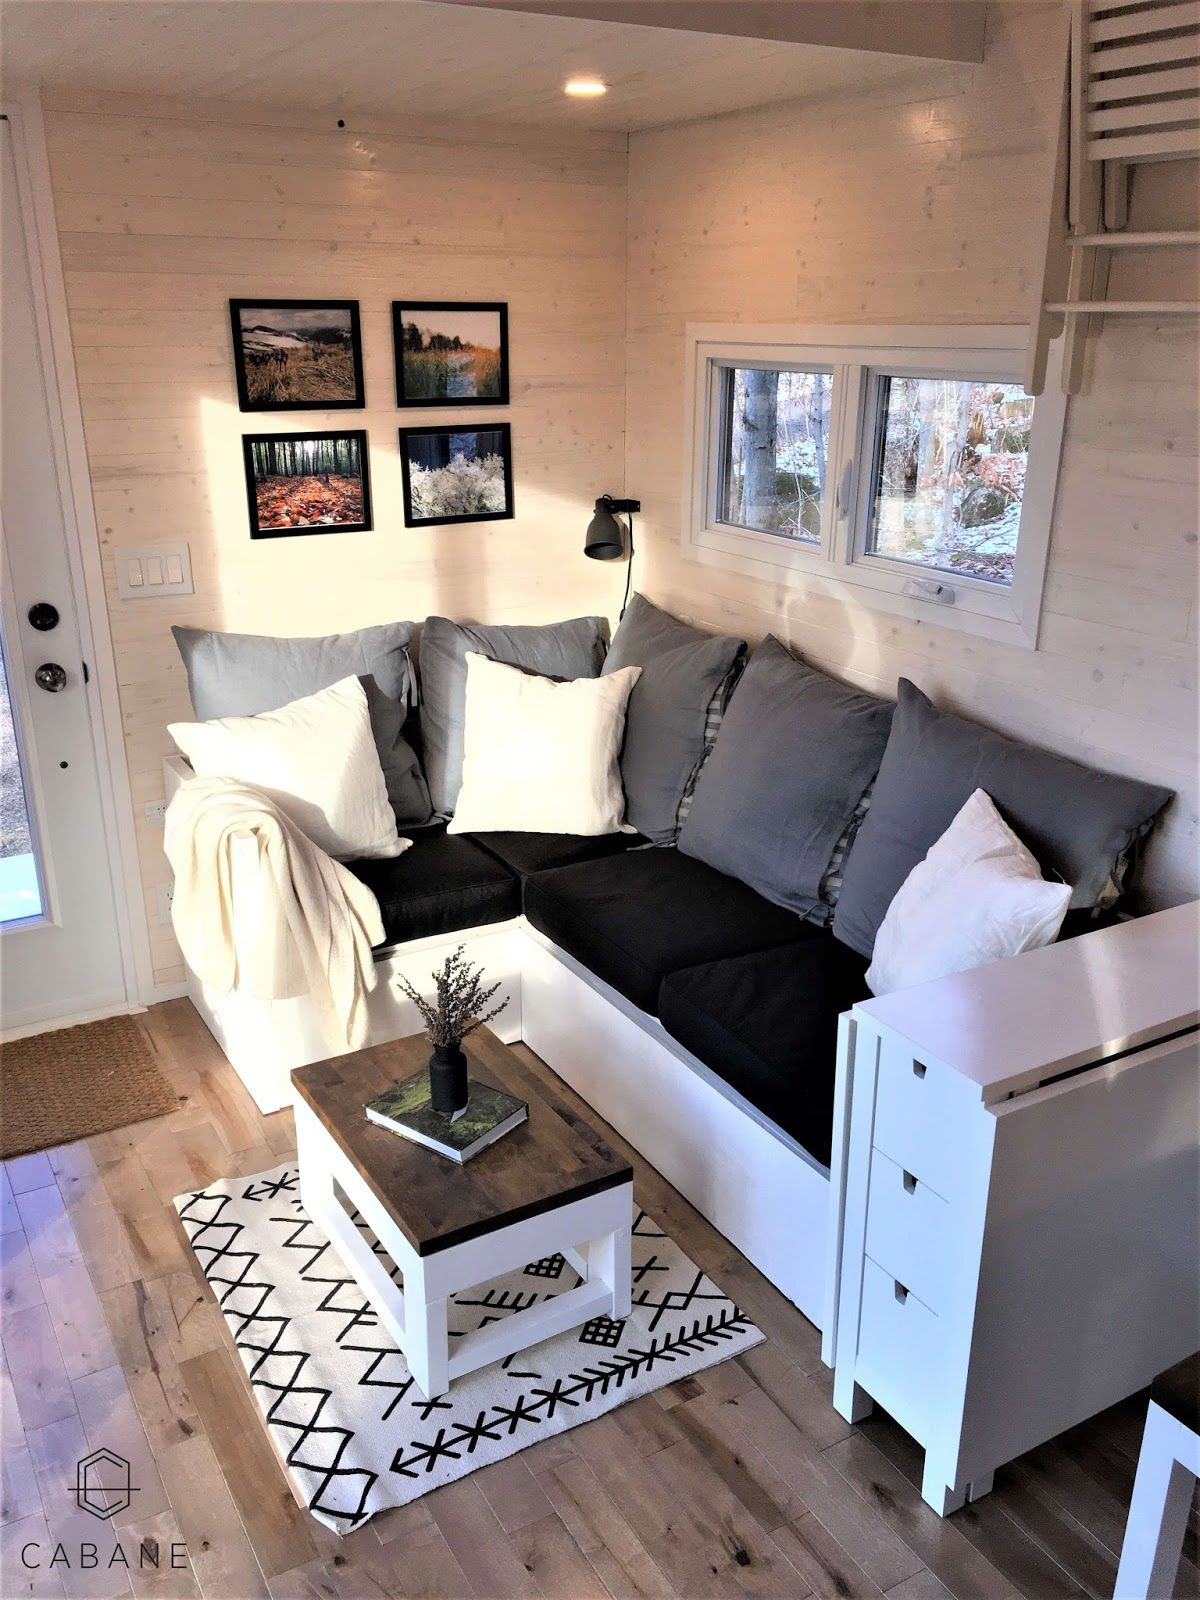 Best Couch And End Table Small Space Perfection In 2019 Tiny 400 x 300